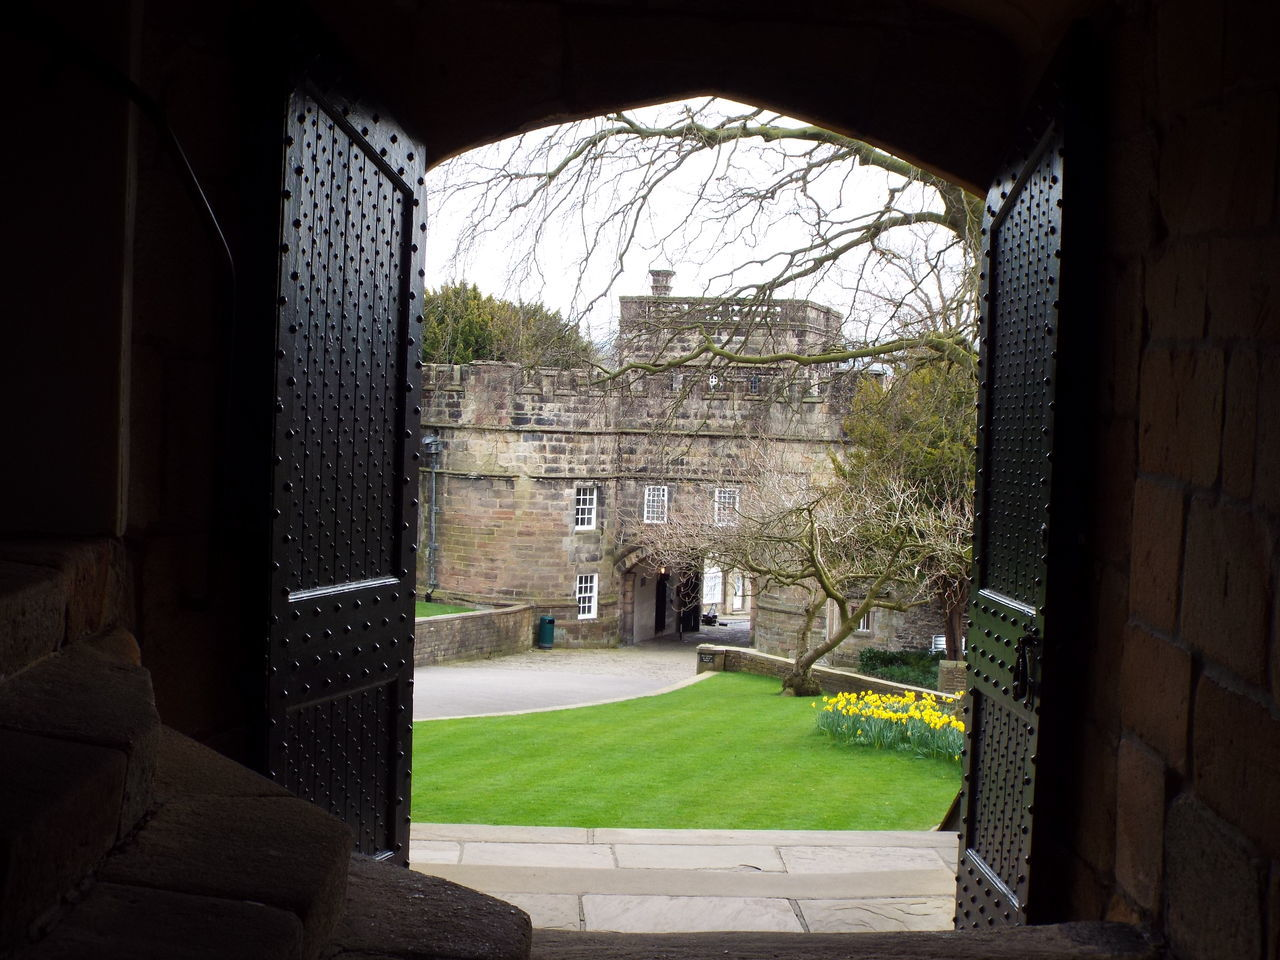 Looking through Skipton Castle's main entrance doors towards the gatehouse Medieval Castle Medieval Castle Skipton Castle Castle Entrance Entrance Main Entrance Skipton Castle Gatehouse Gatehouse